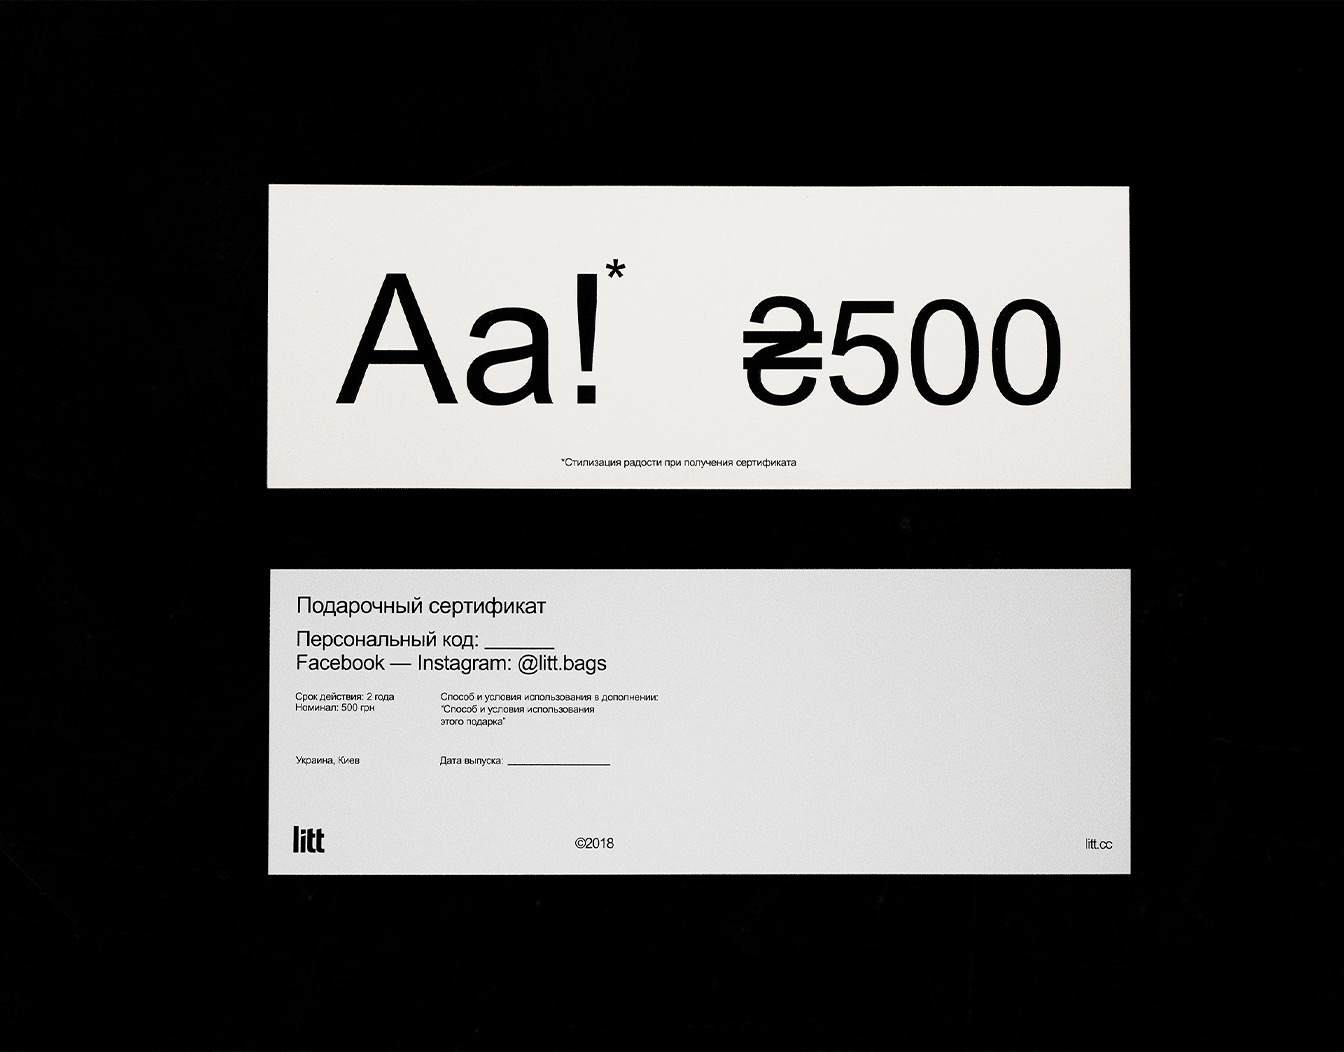 Two white gift vouchers with large typefaces